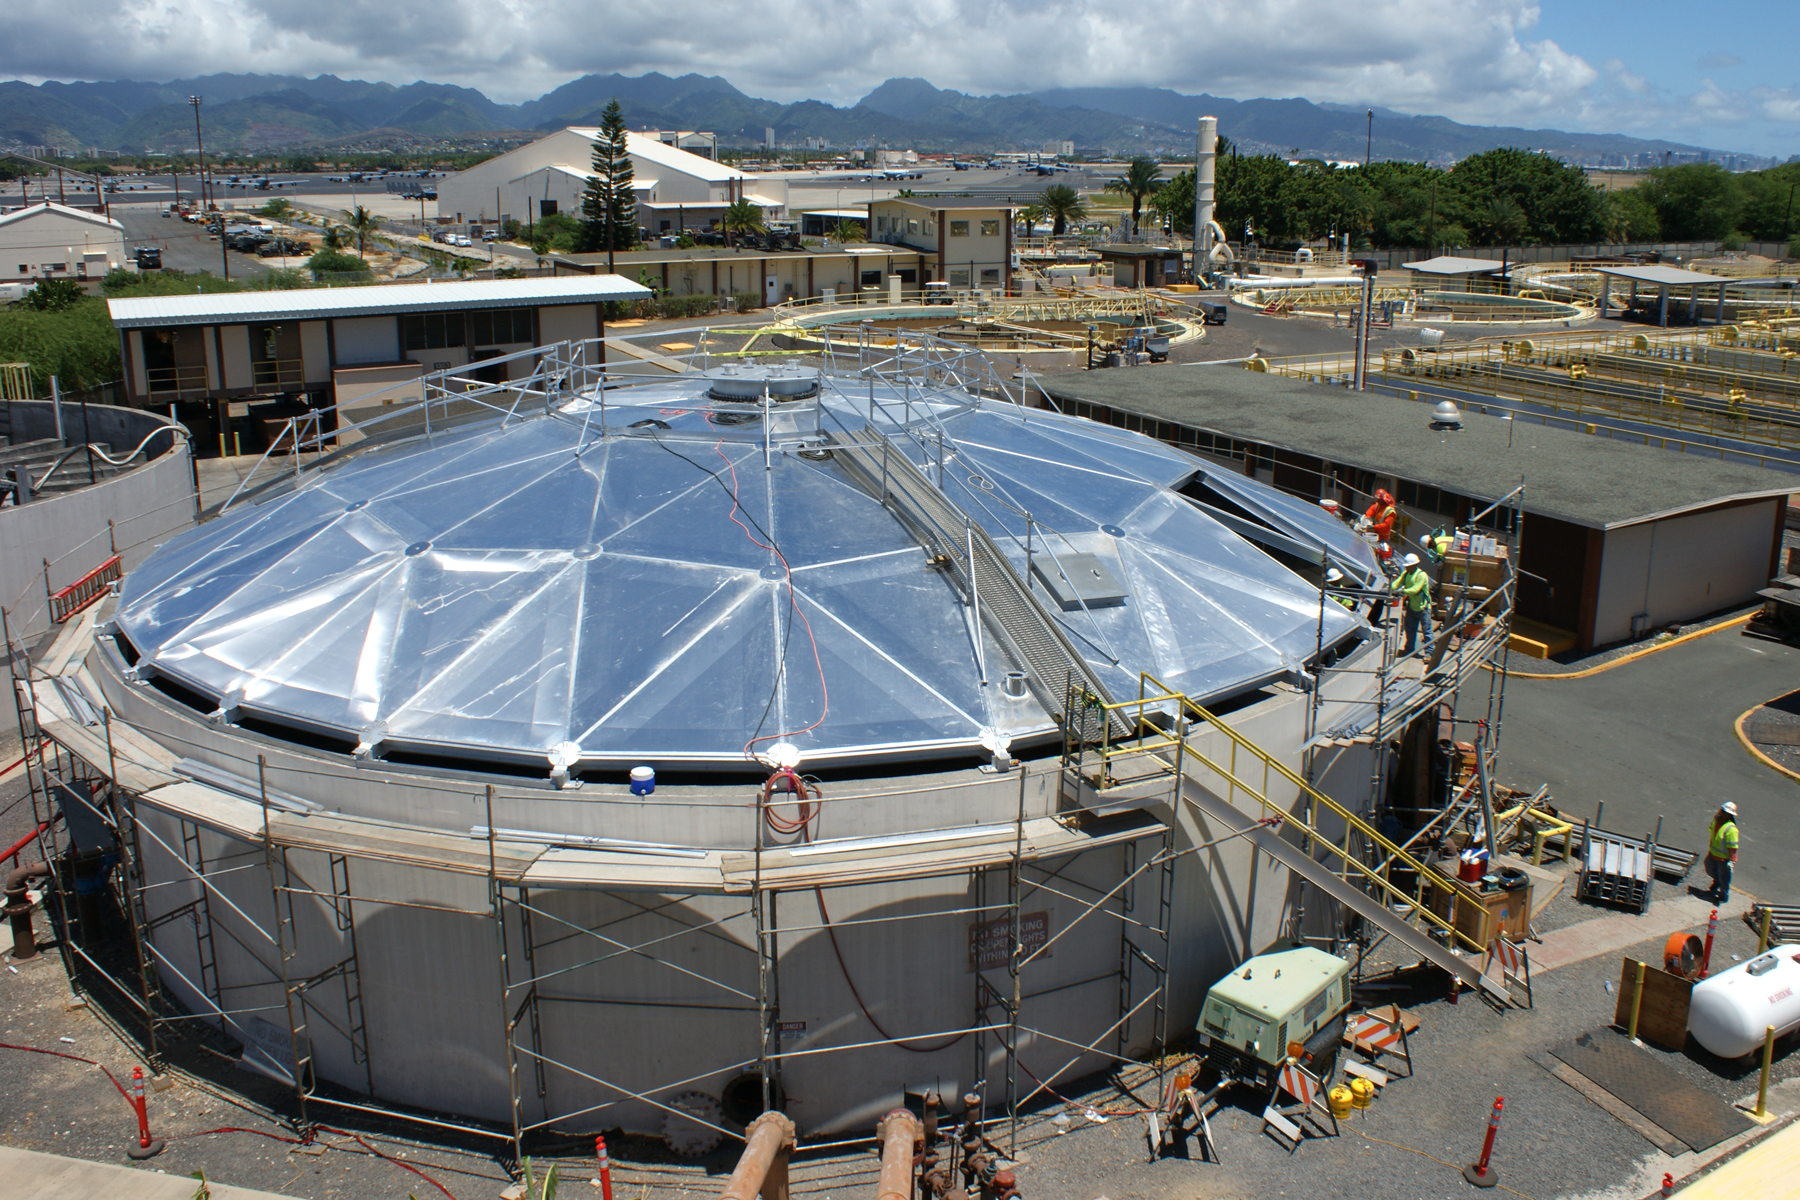 US_Navy_110818-N-OF713-003_Naval_Facilities_Engineering_Command_Hawaii_is_upgrading_the_wastewater_treatment_plant_at_Joint_Base_Pearl_Harbor-Hicka.jpg